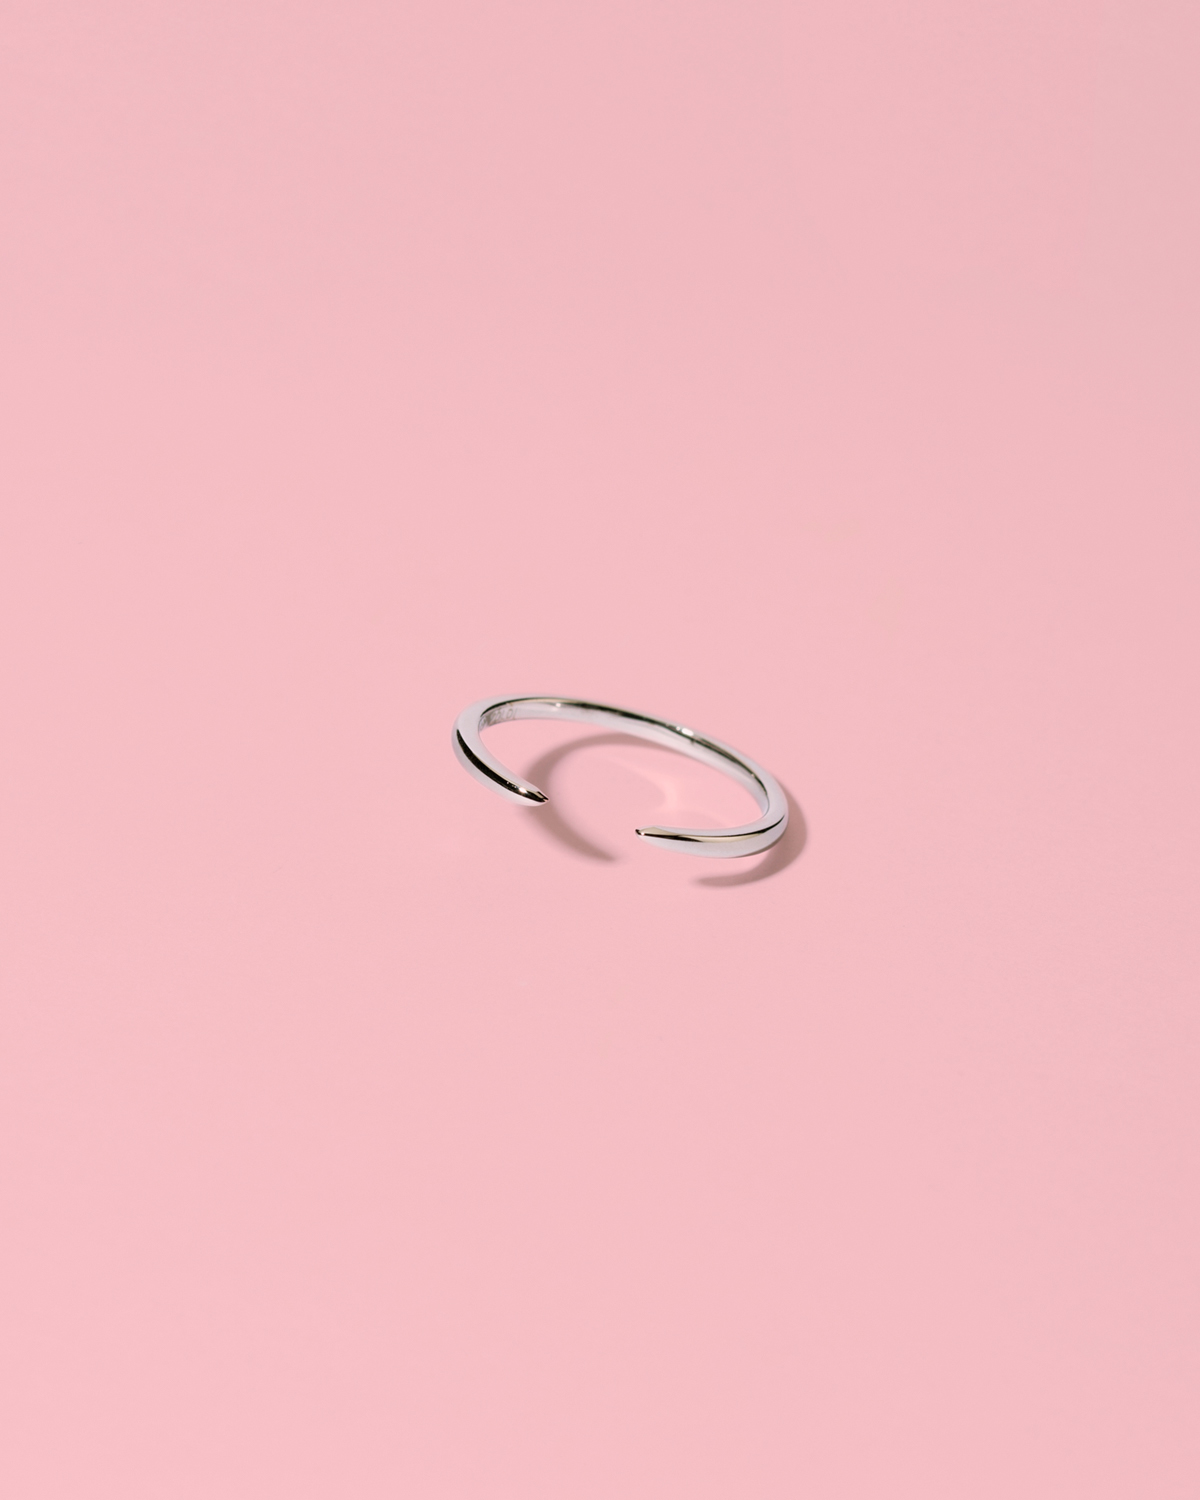 Superpower minimalistic <br>silver band